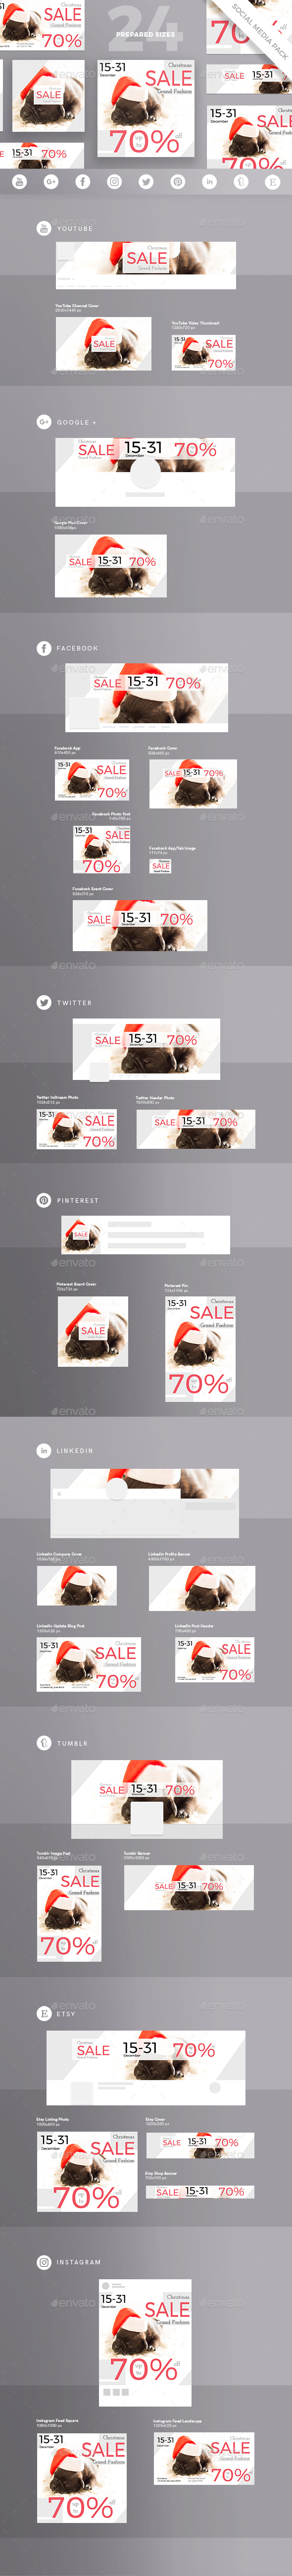 GraphicRiver Christmas Sale Social Media Pack 21115442